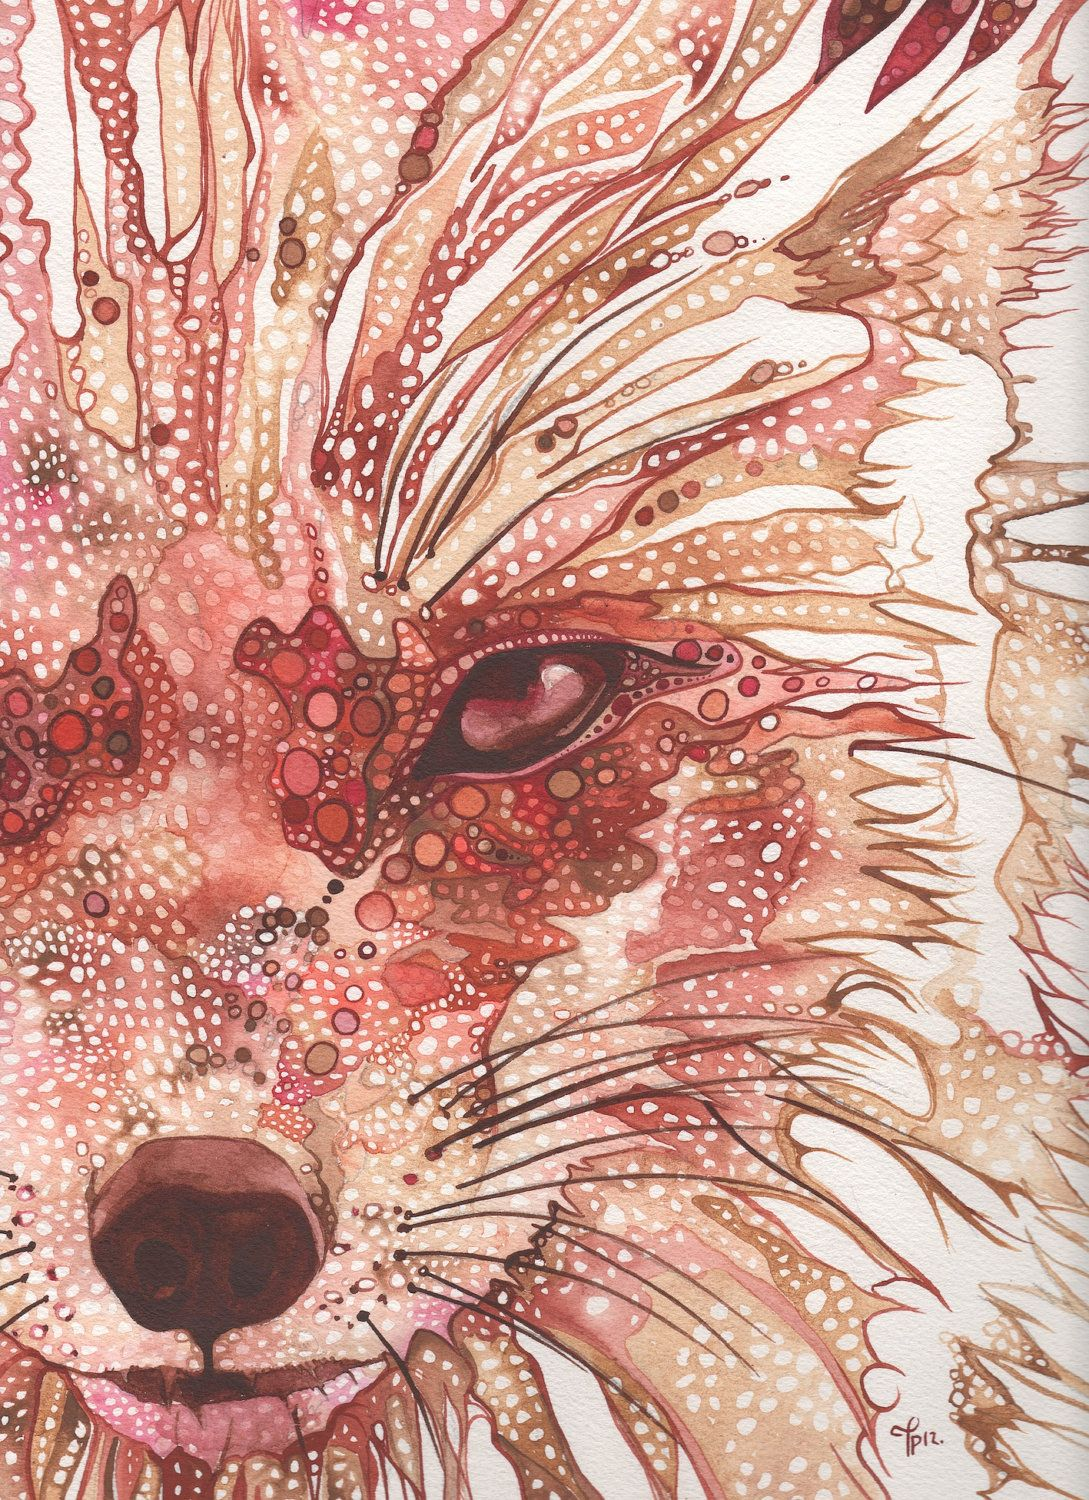 Rust Fox 4 X 6 Print Of Hand Painted Detailed Watercolour Artwork In Deep Rich Surreal And Psychedelic Orange Red Salmon Pink Earth Tones 5 00 Via Etsy